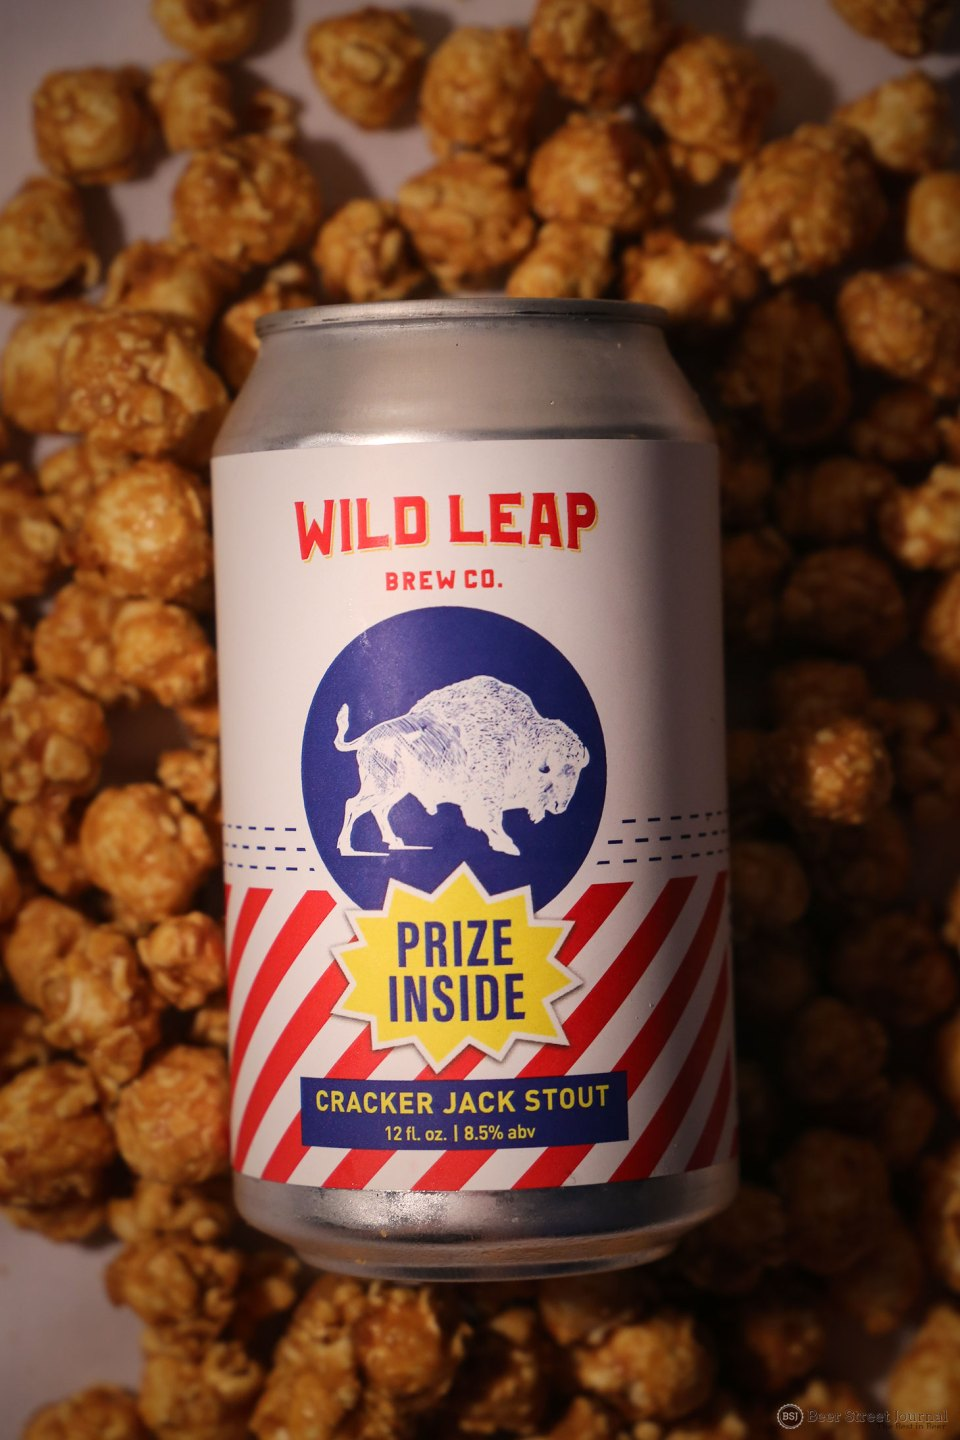 Wild Leap Prize Inside can